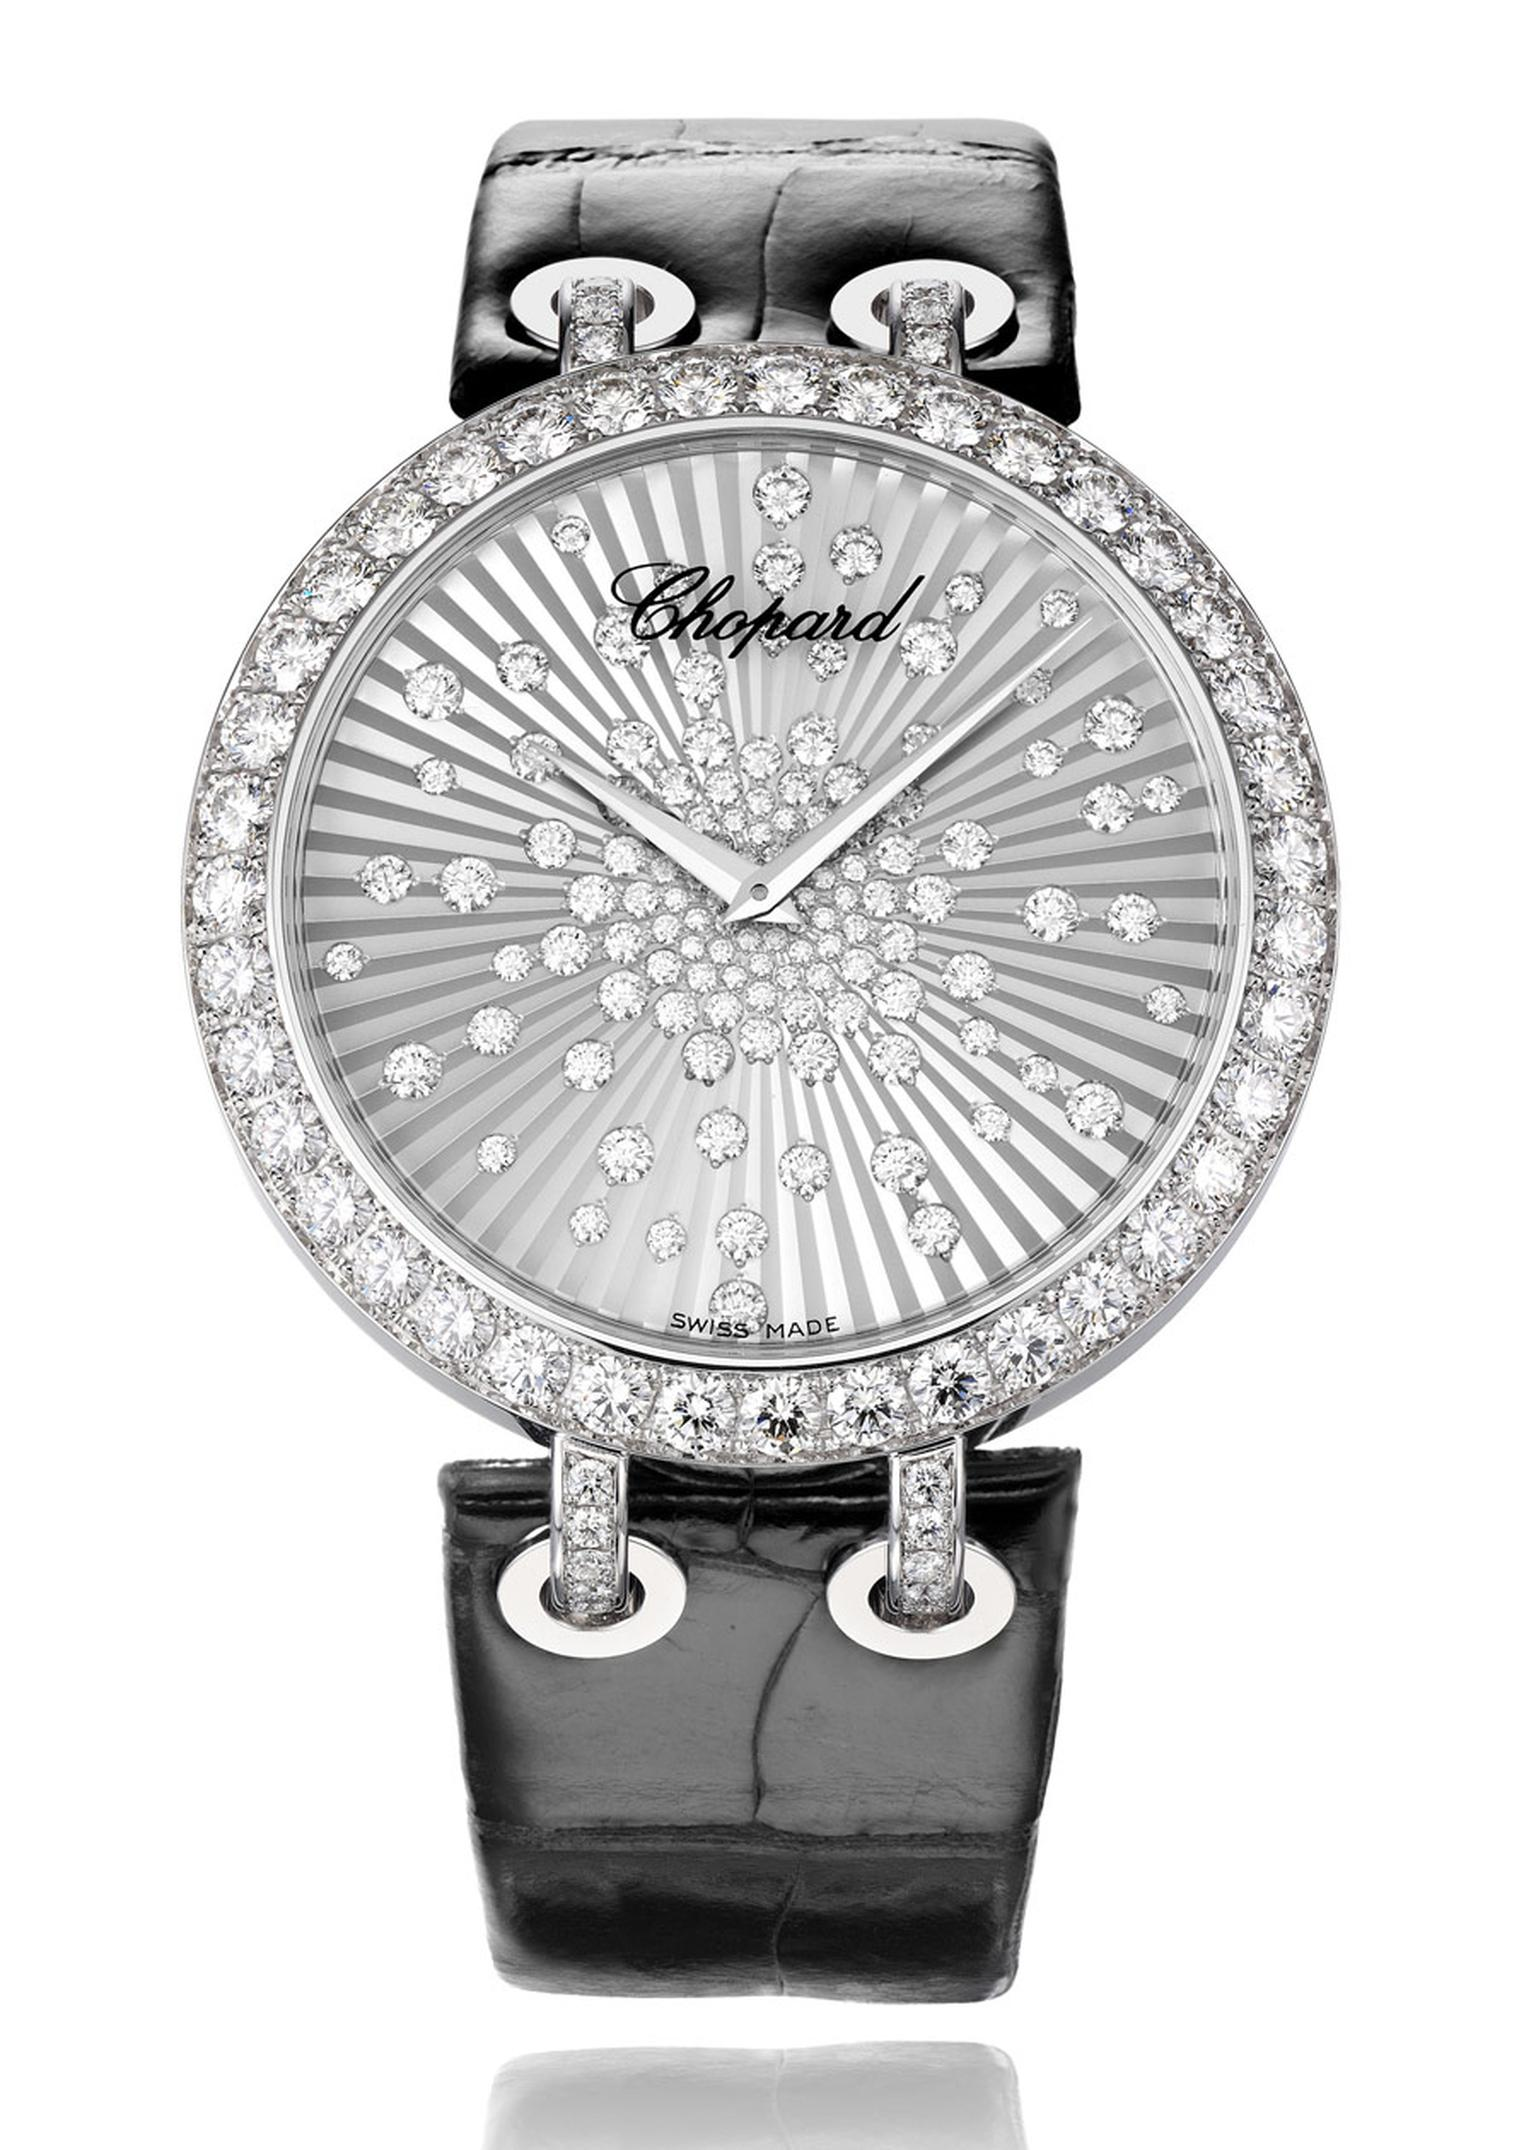 Chopard-SalonQP1